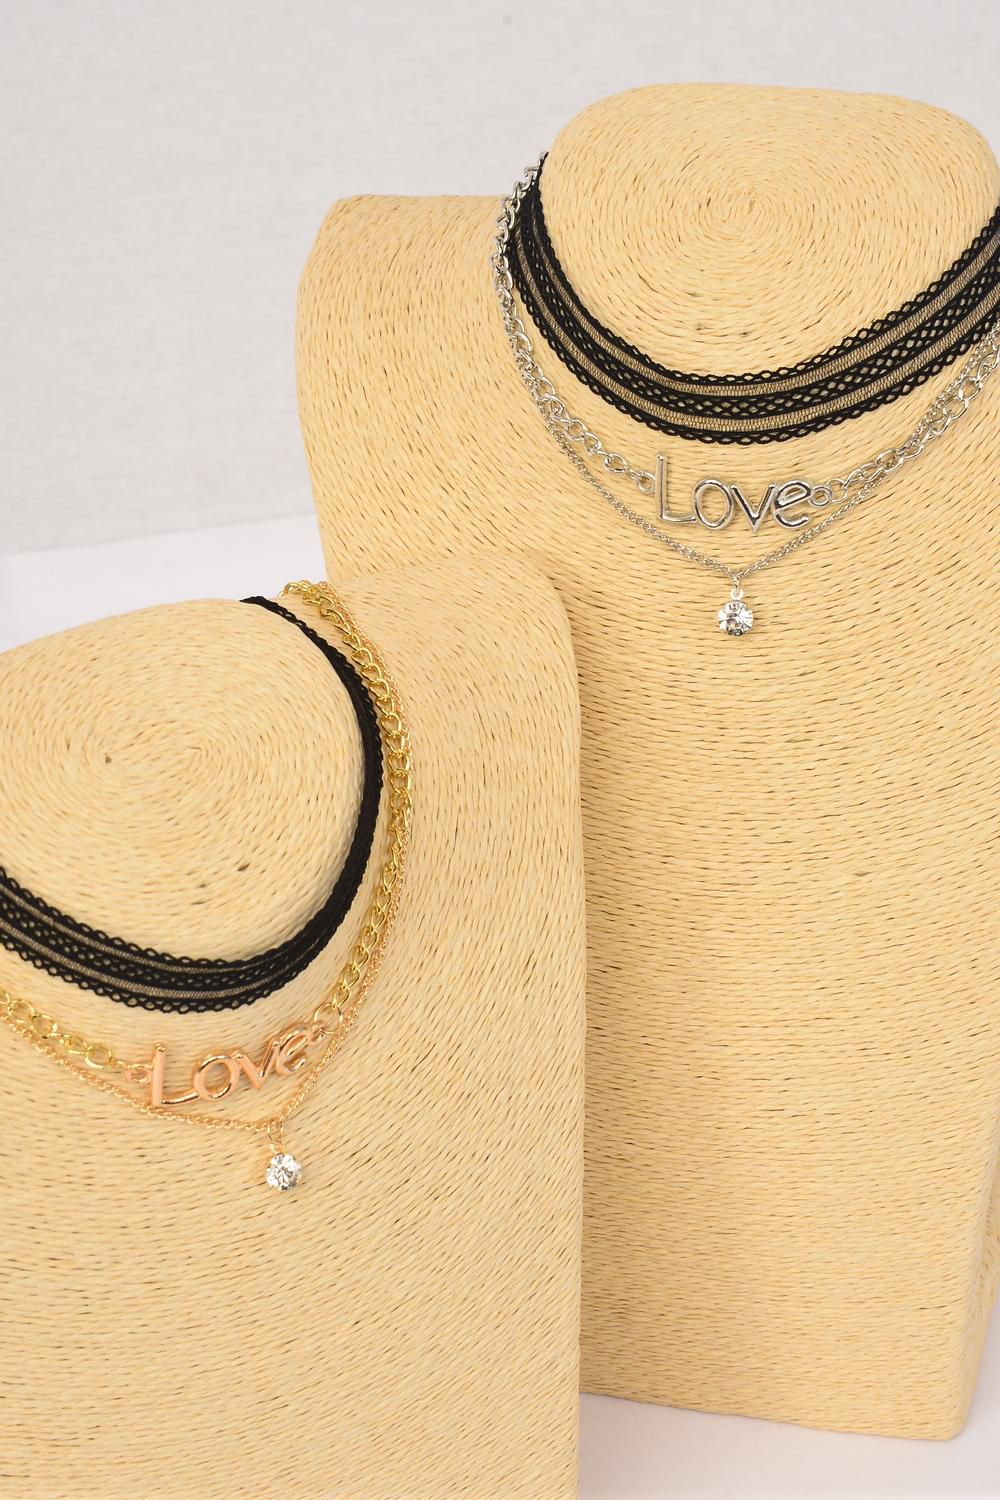 "Necklace Choker 36 pcs Love & Rhinestone Drop Lace Stretch/DZ Lace 14"" Stretch,Necklace 16"" Extension Chain,6 Gold,6 Silver Asst,Display Card & OPP Bag & UPC Code,3 pcs per Card,12 Card= Dozen"